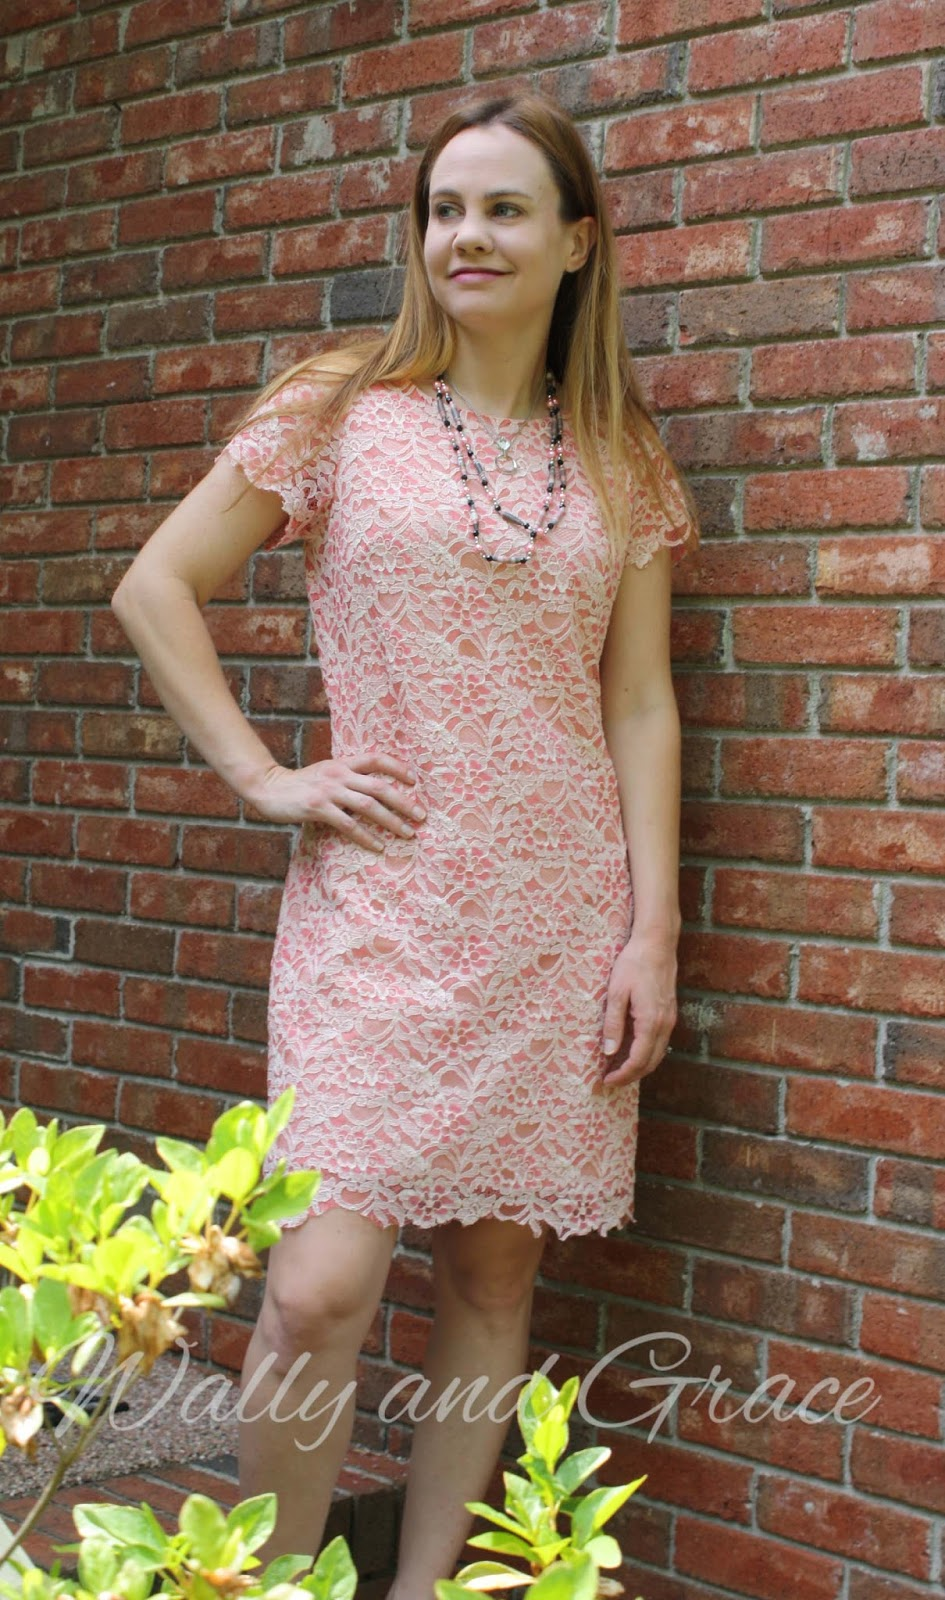 Wally and Grace Designs: Wear to Where Wedding Guest Style